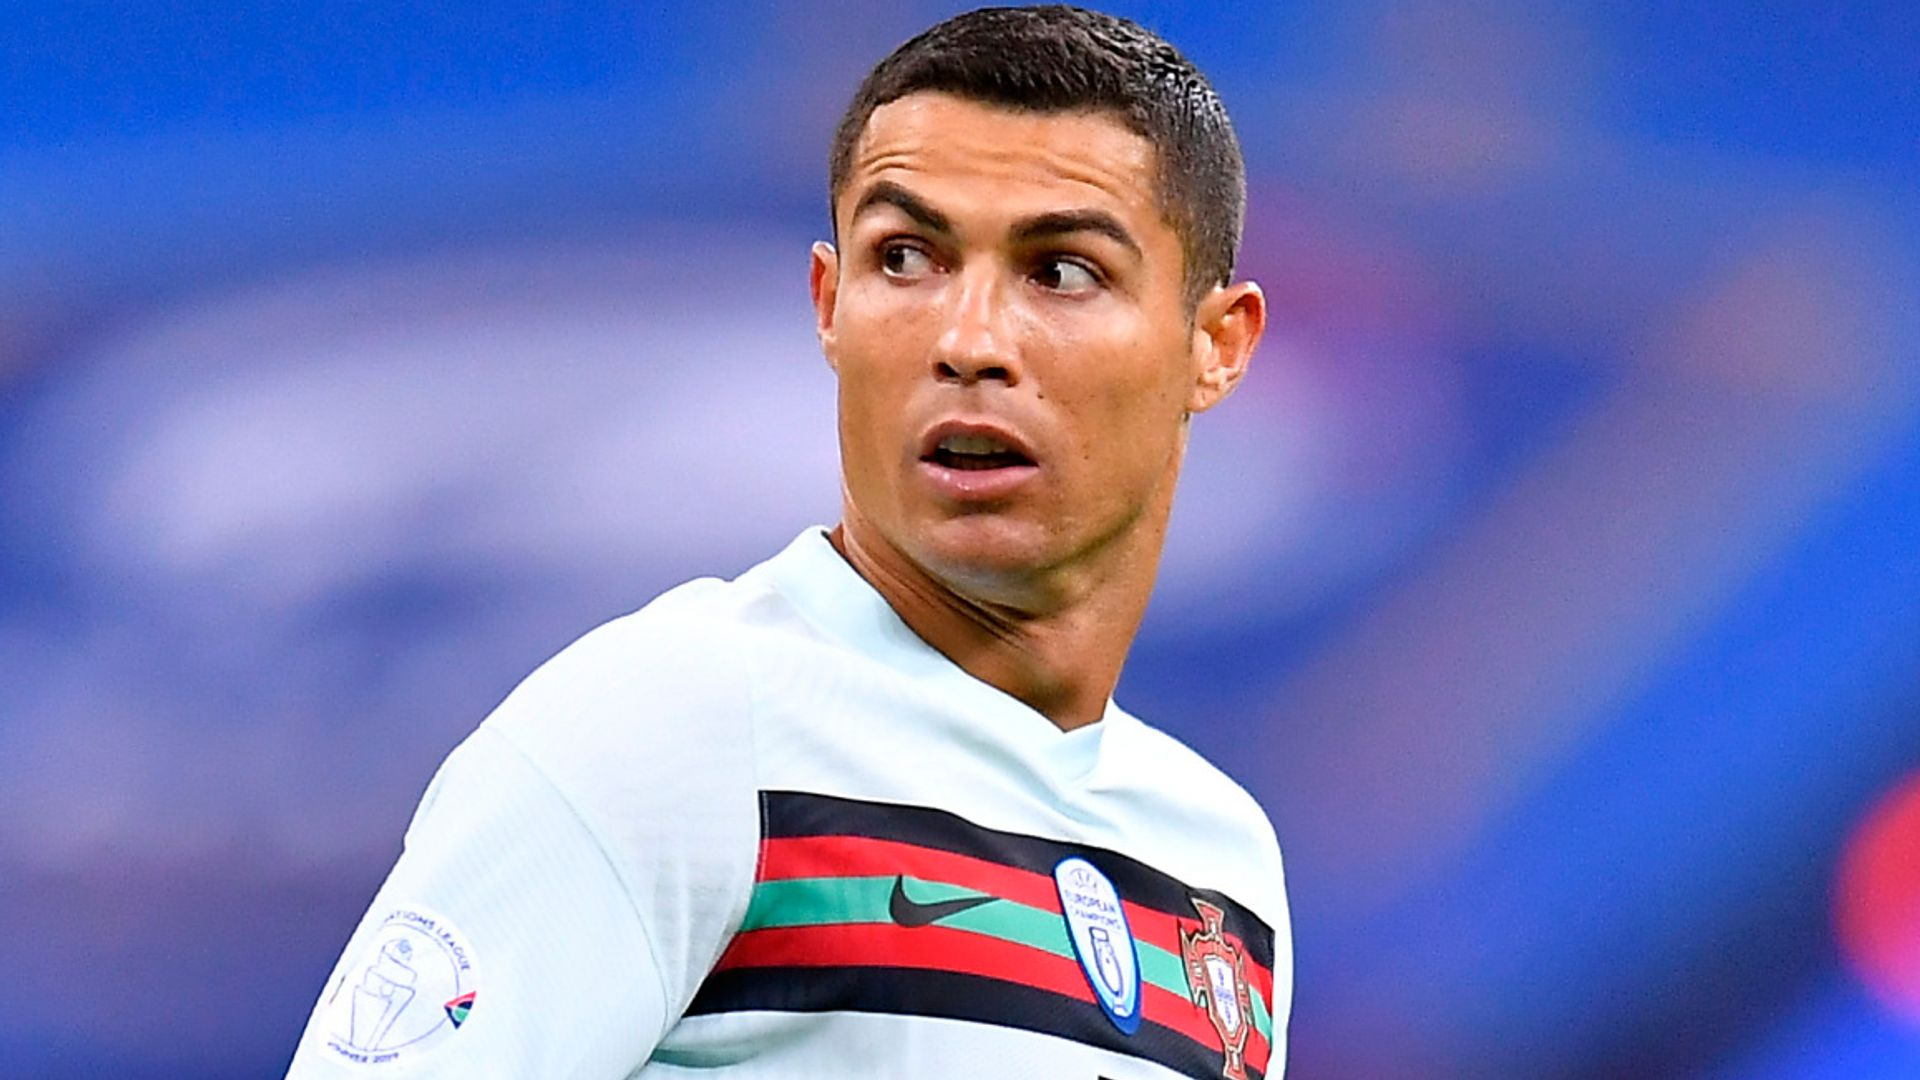 Ronaldo to return to Italy for quarantine